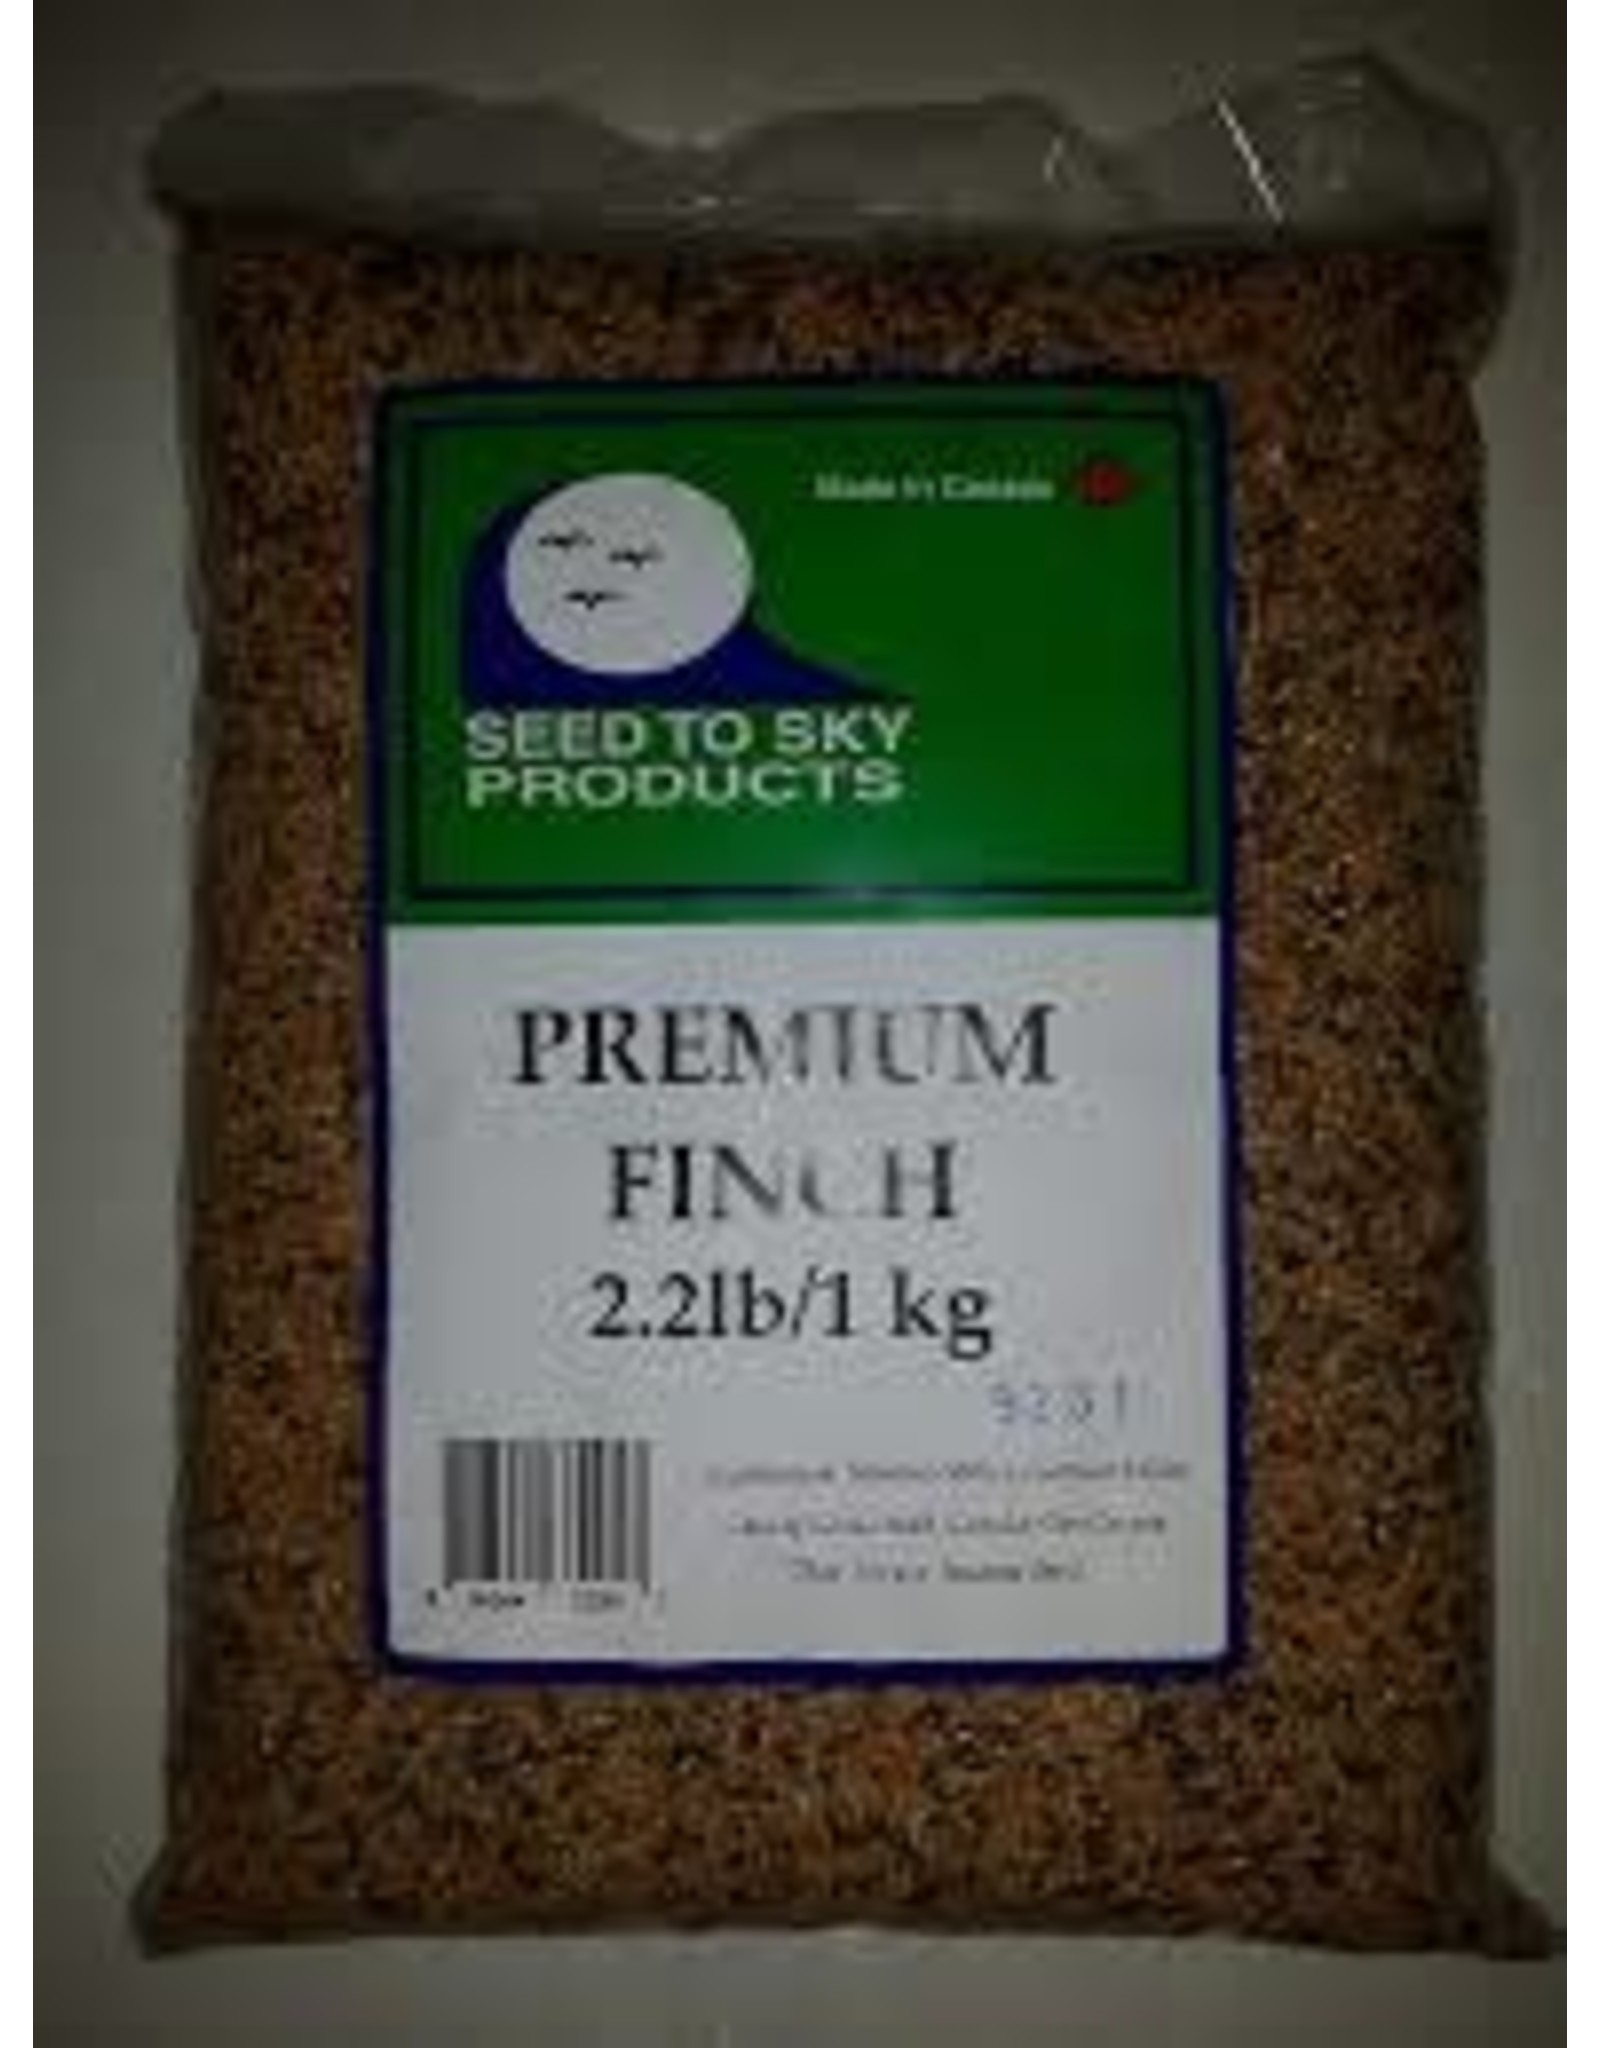 Seed to Sky Seed to Sky - Premium Finch